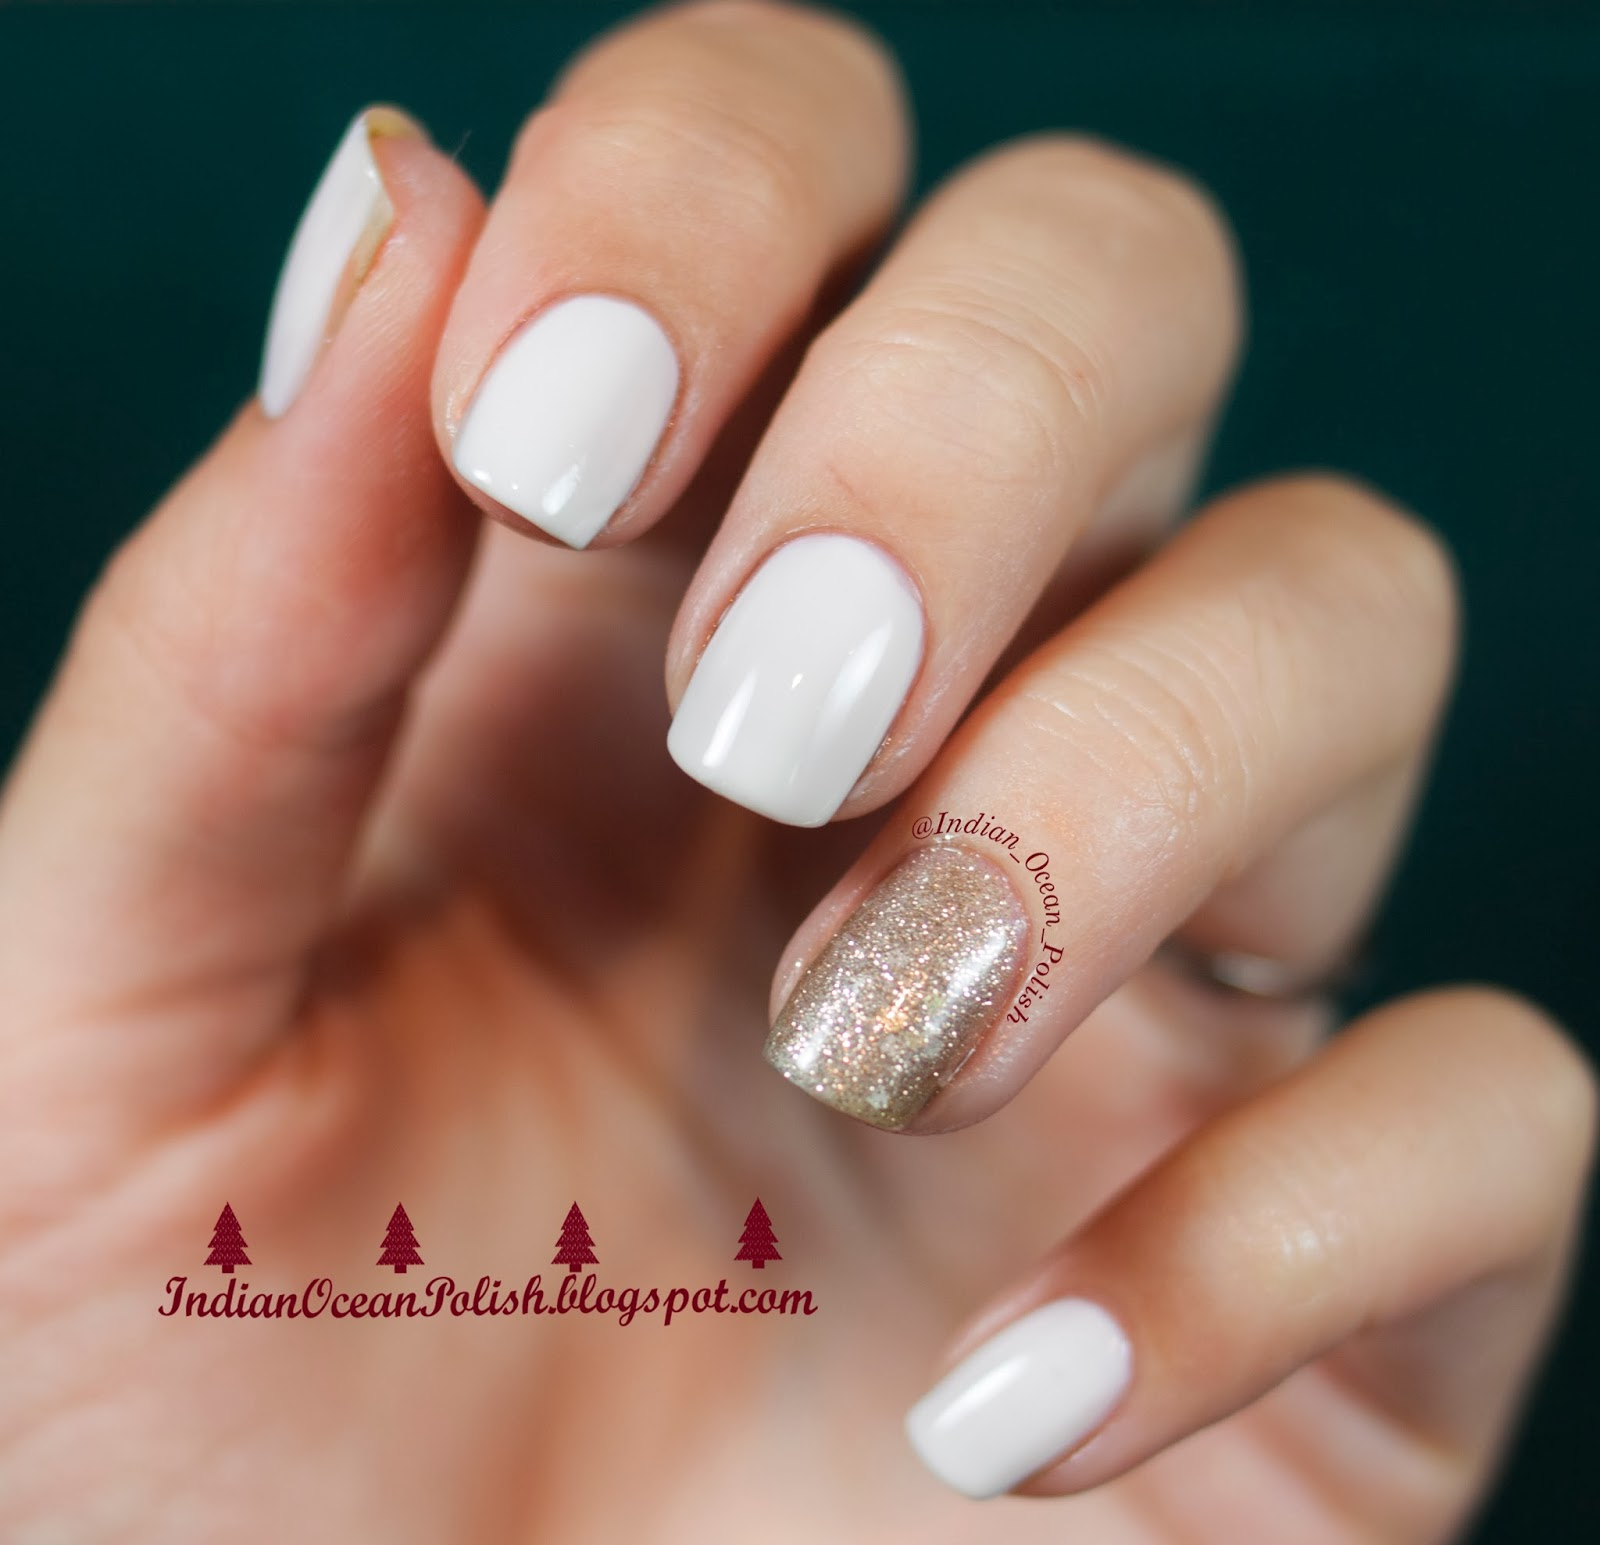 50 Amazing Nail Art Designs For Beginners With Pictures Simple Plain